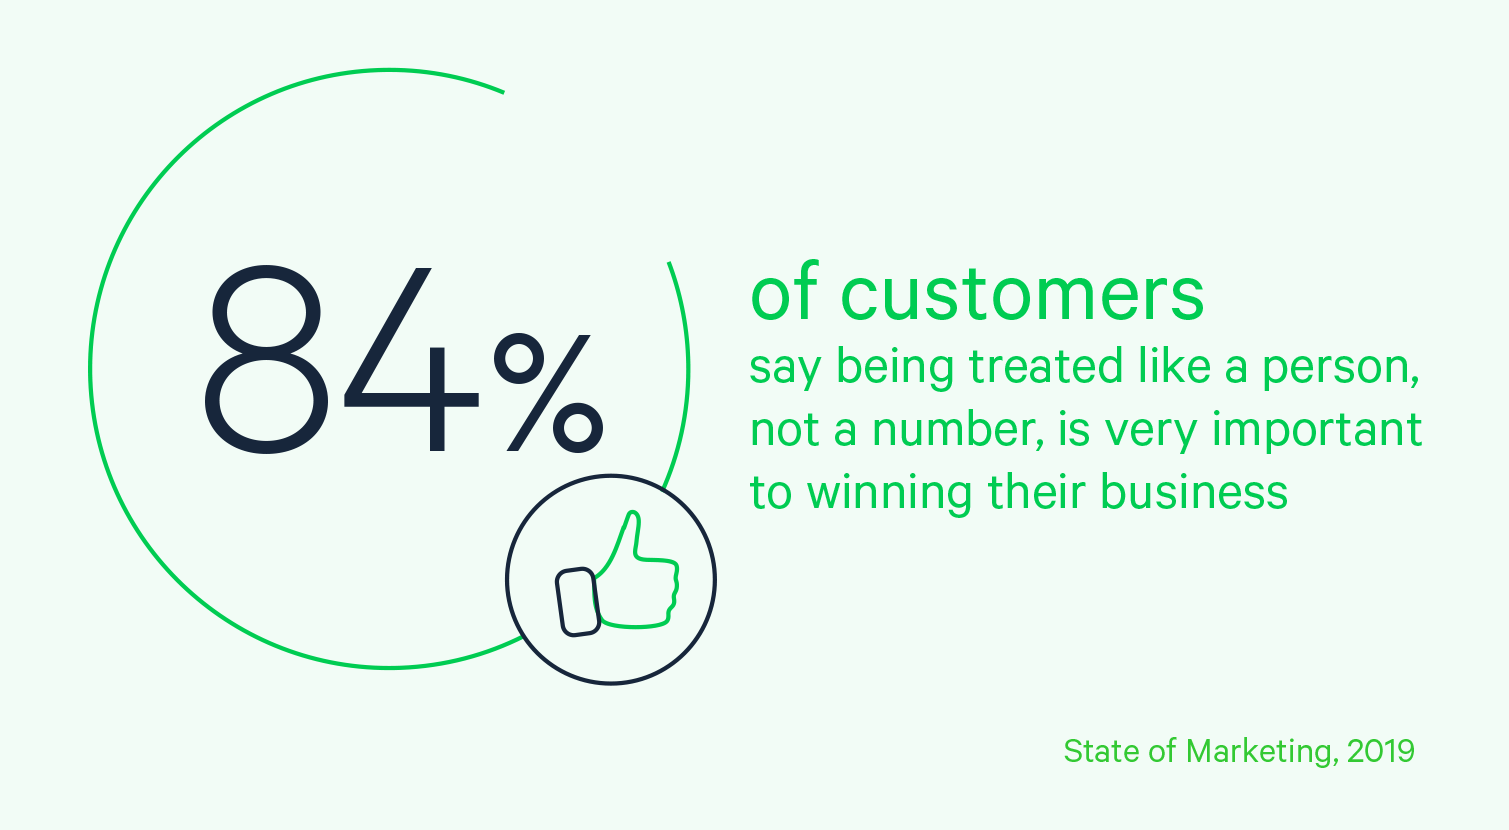 84% of customers say being treated like a person, not a number, is very important to winning their business